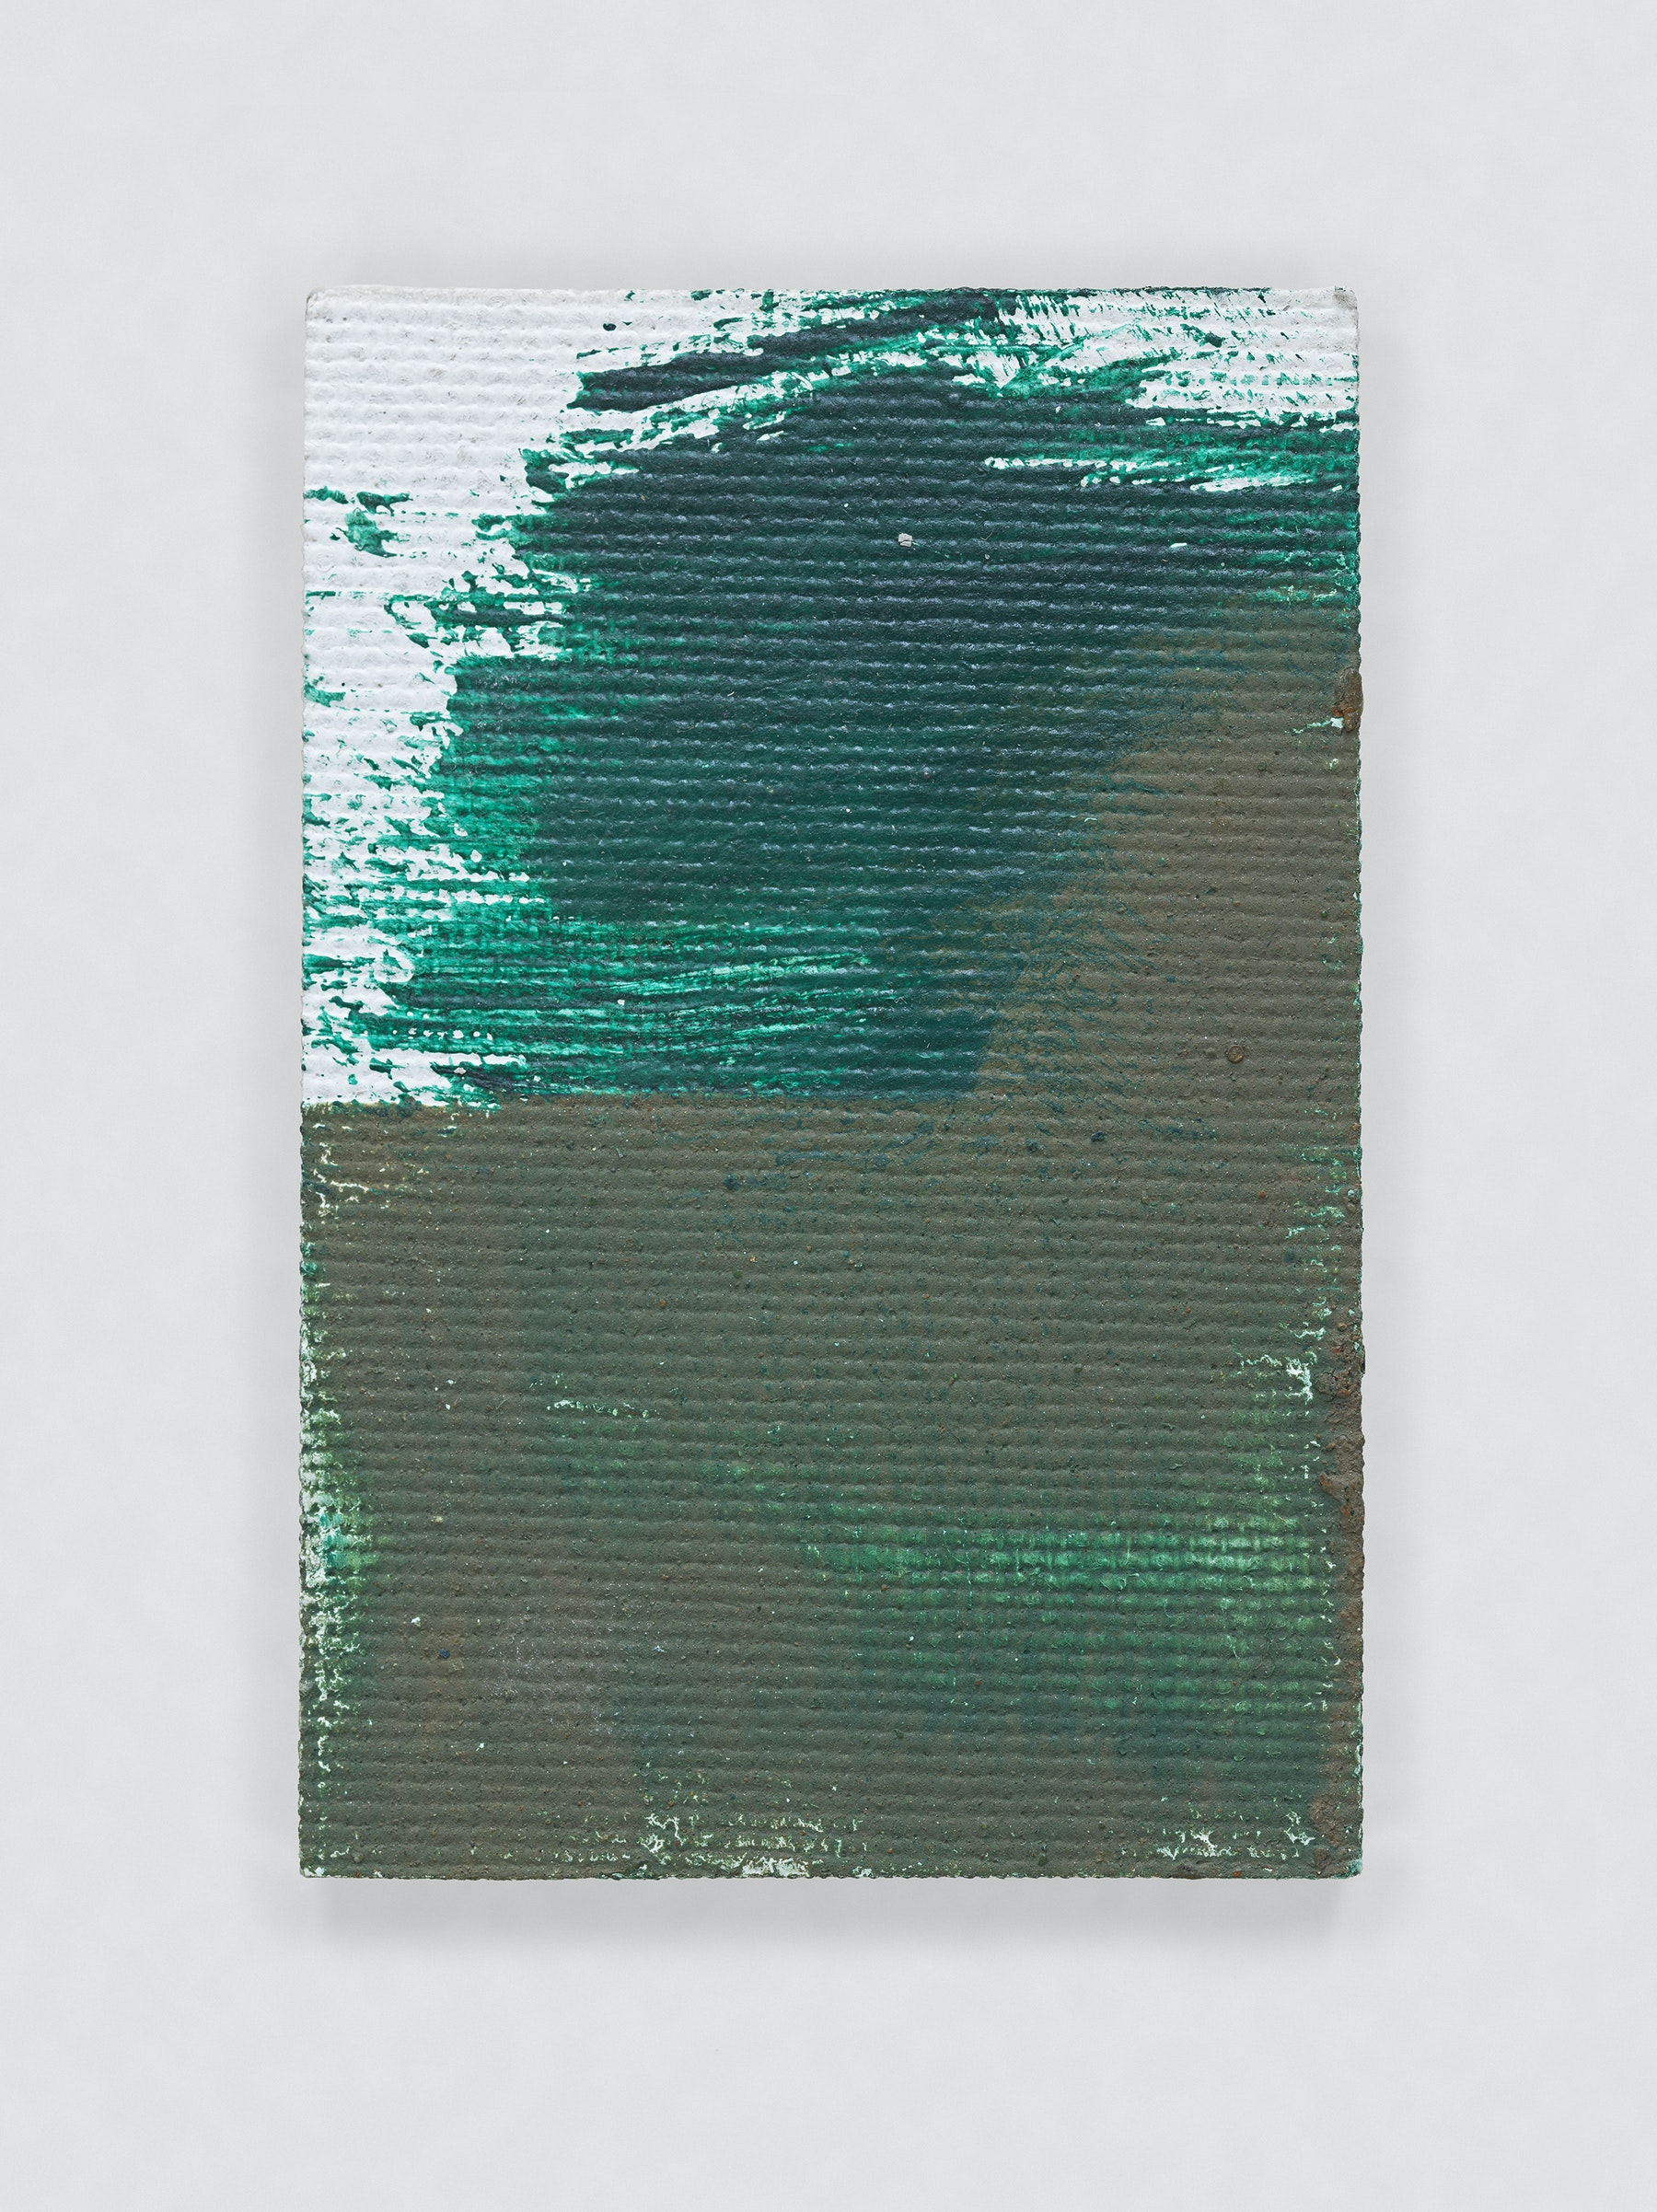 """Louise Fishman """"UNTITLED,"""" 2011 Oil on board 3 x 2"""" [HxW] (7.62 x 5.08 cm) Inventory #FIS132 Courtesy of the artist and Vielmetter Los Angeles Photo credit: Genevieve Hanson Signed and dated on verso"""